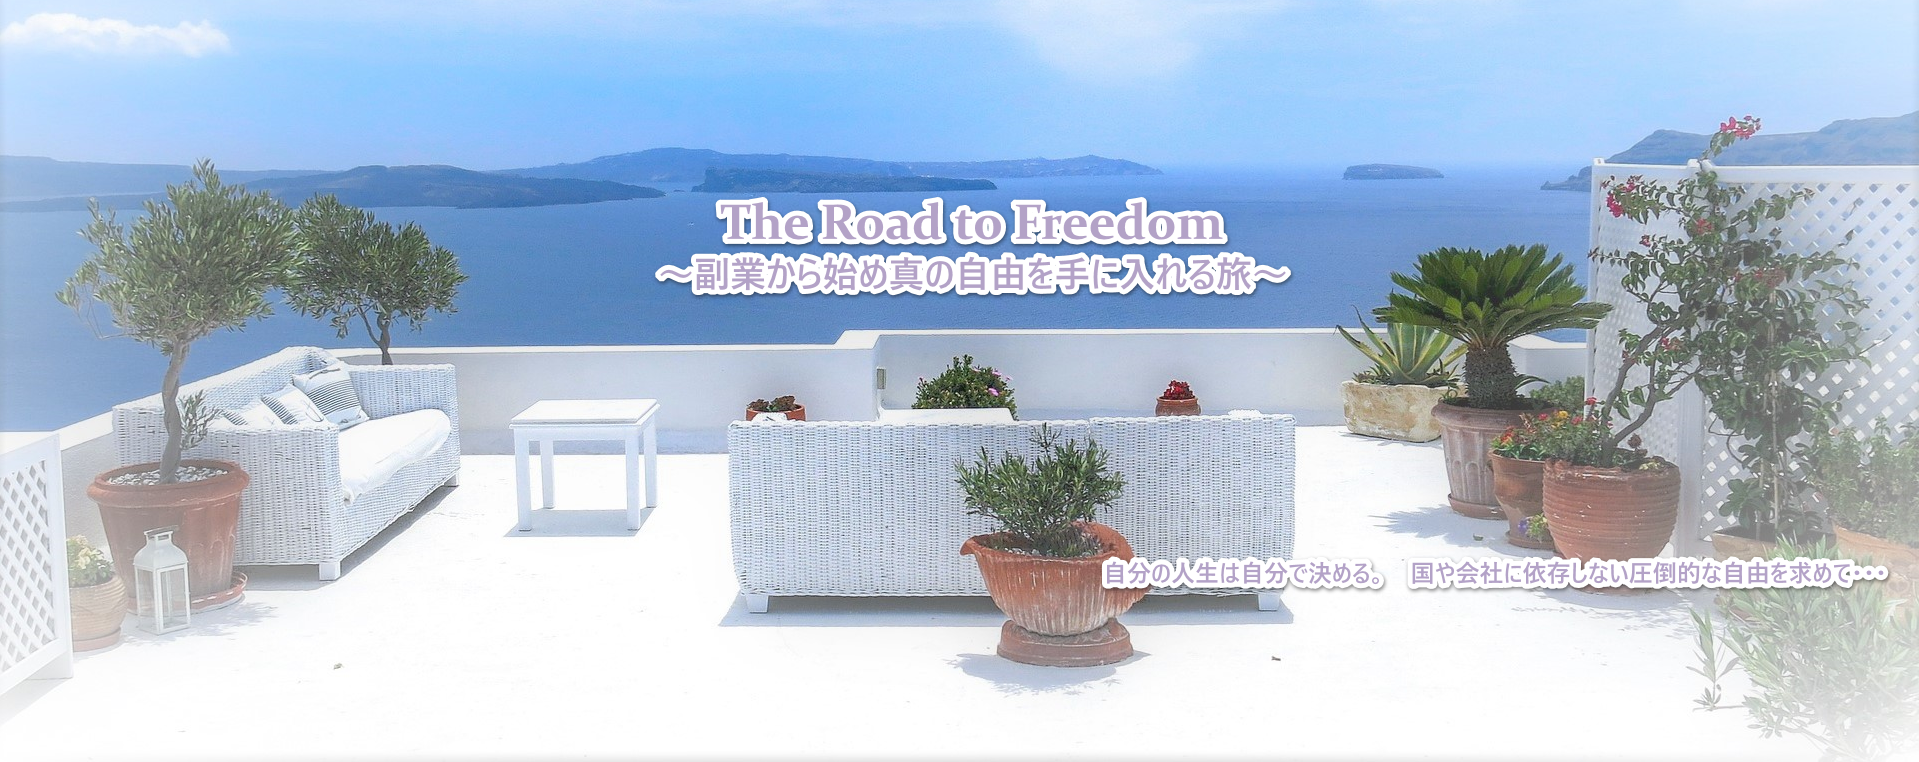 The Road to Freedom〜副業から始め真の自由を手に入れる旅〜